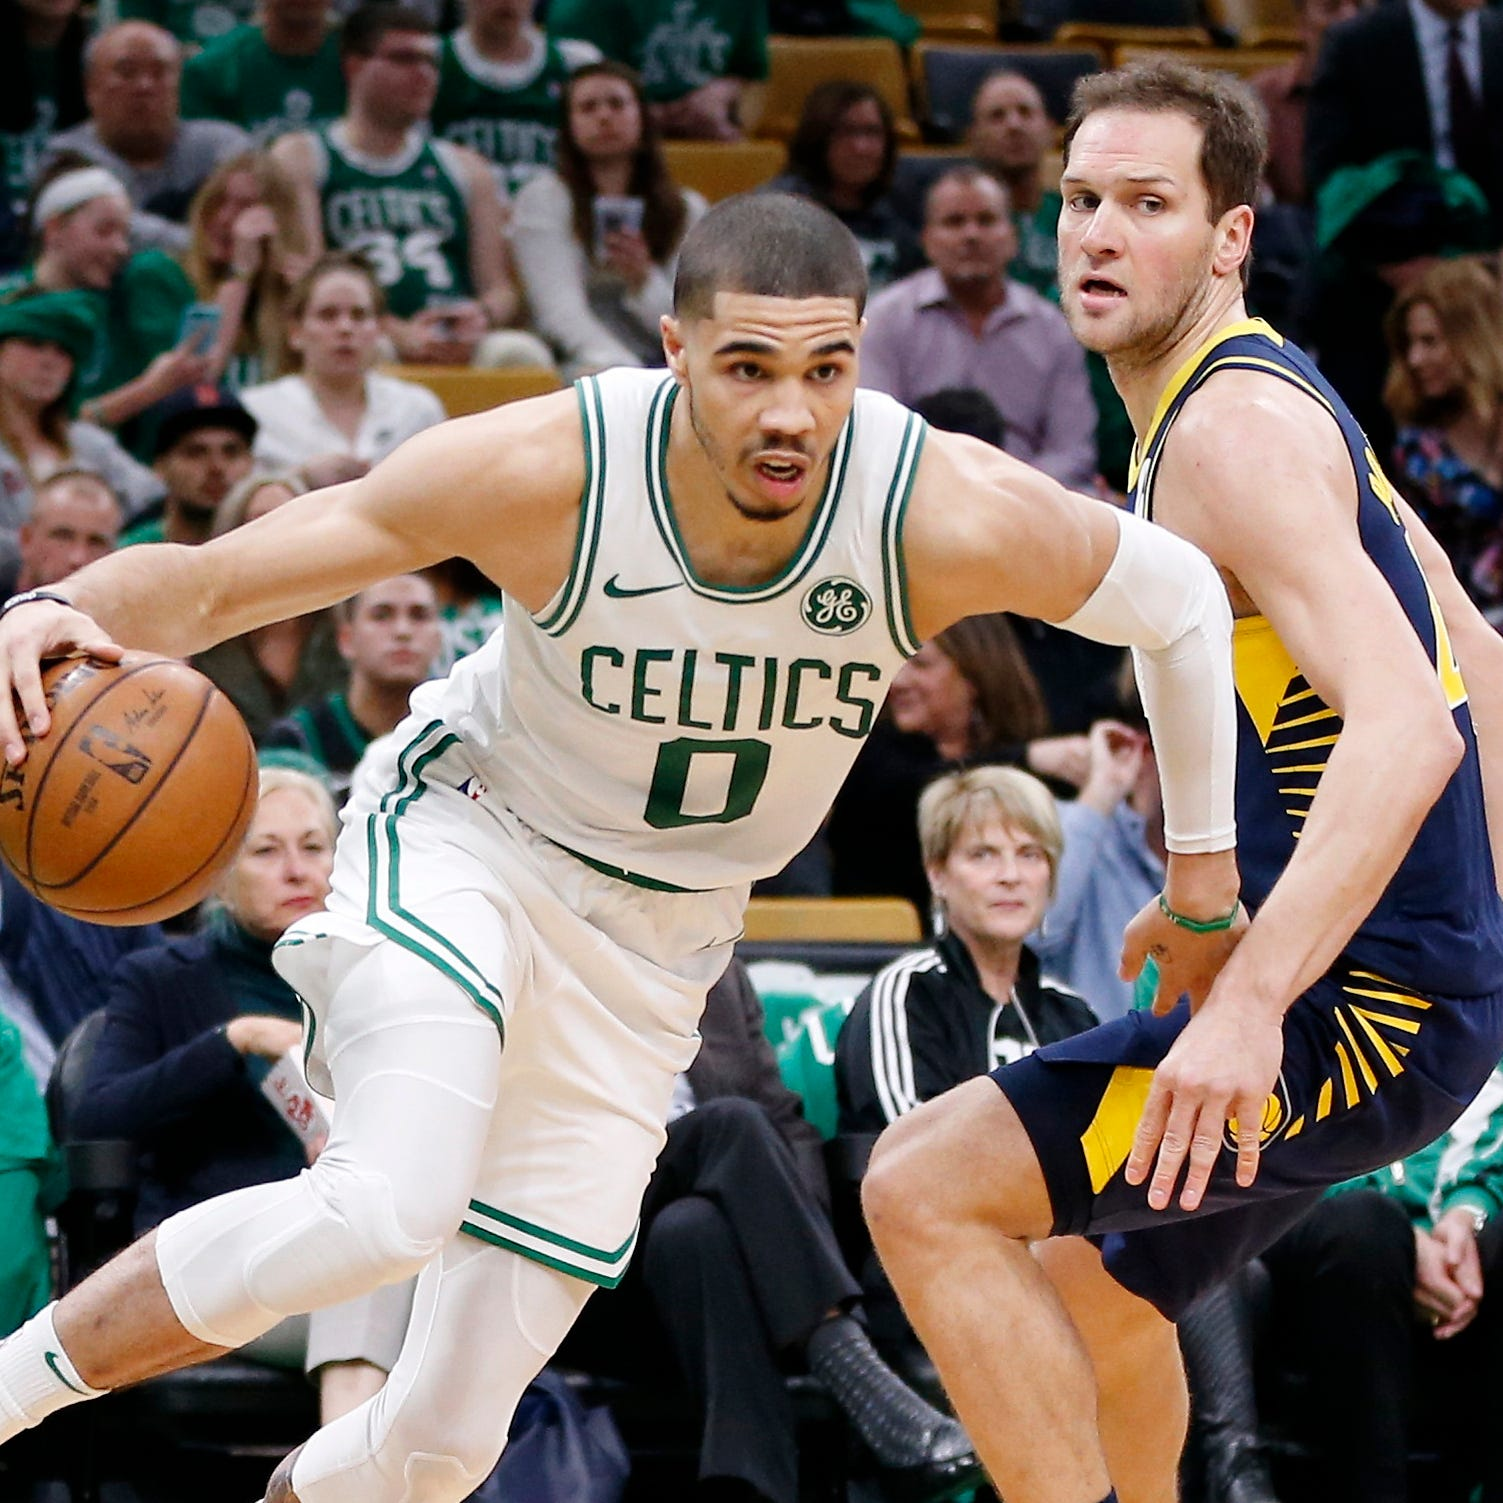 Pacers unravel in crunch time as Celtics grab firm hold on series with 2-0 lead